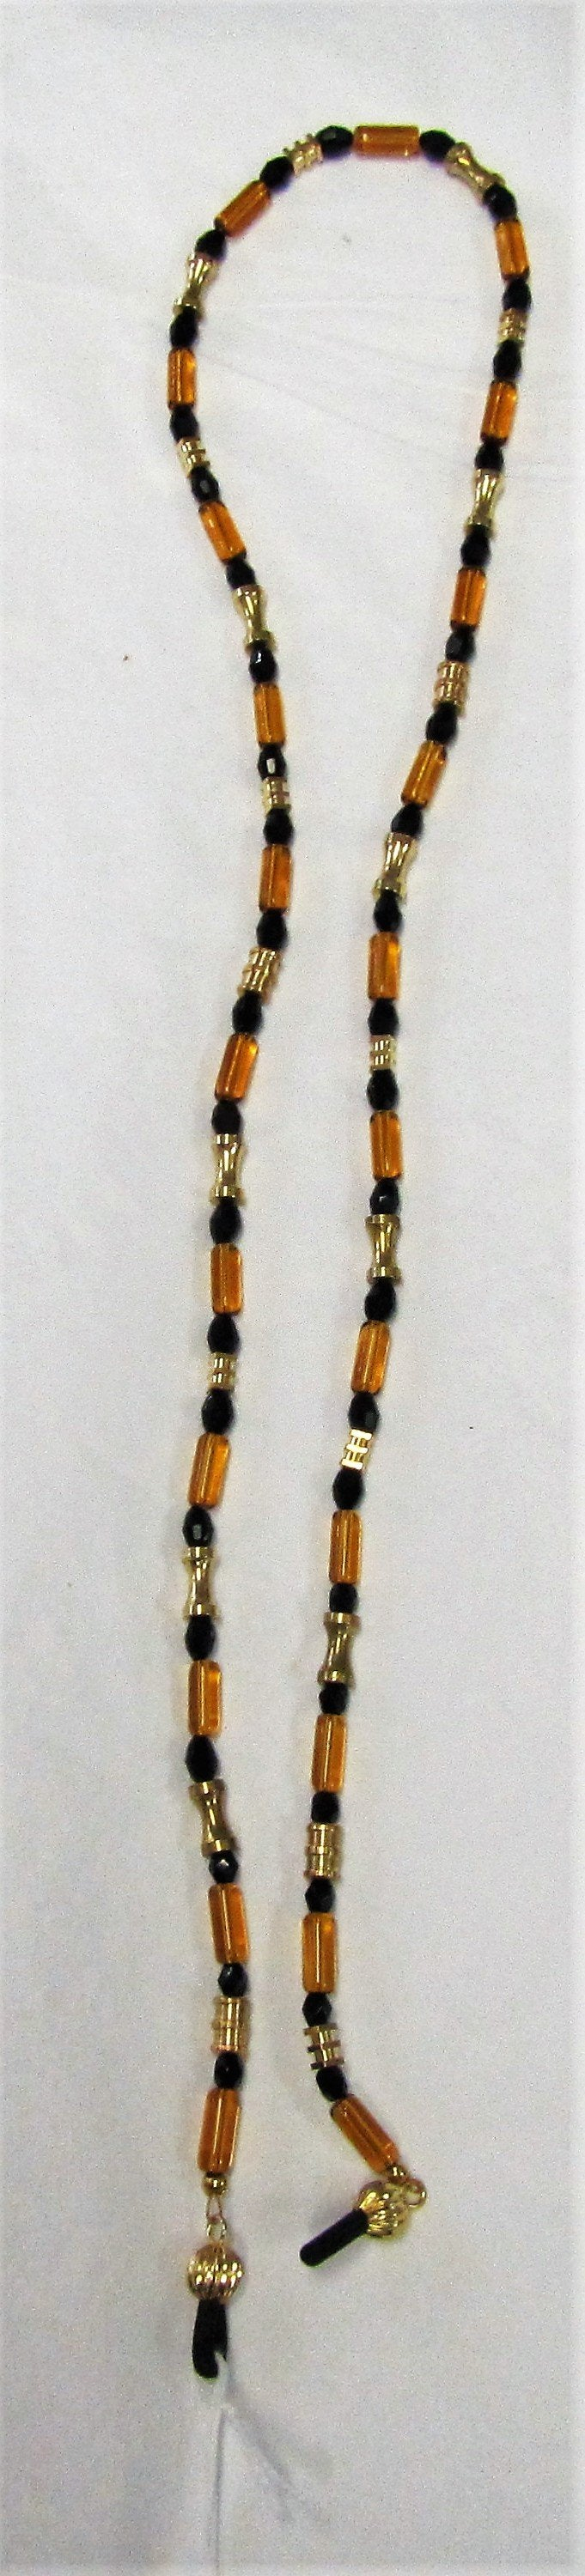 Handcrafted beautiful beaded glasses chains